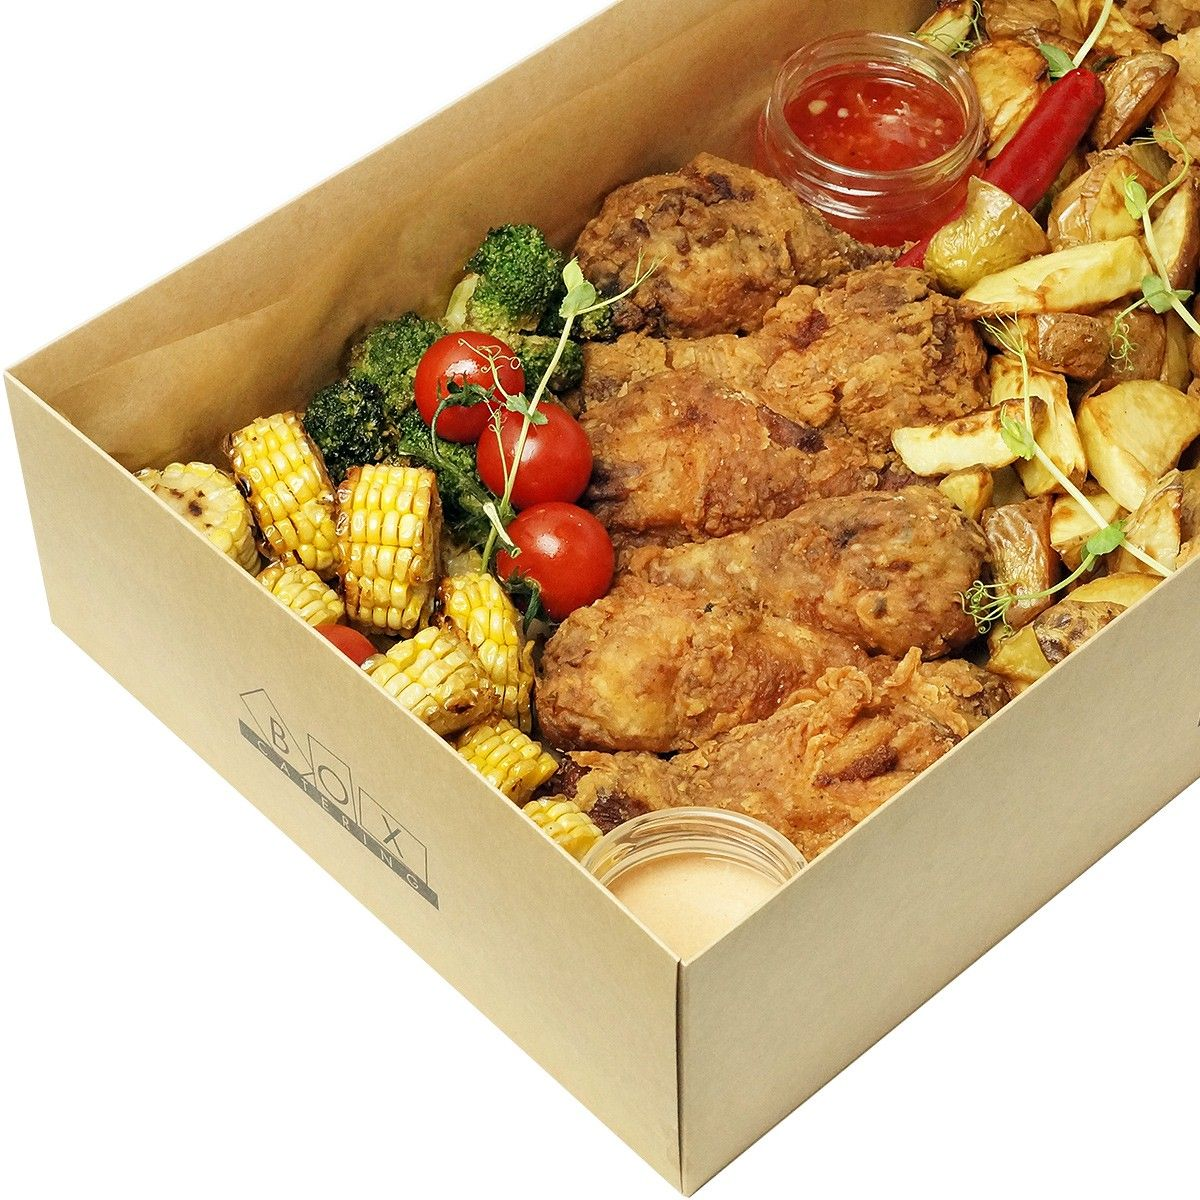 Fried chicken big box: 999 грн. фото 5